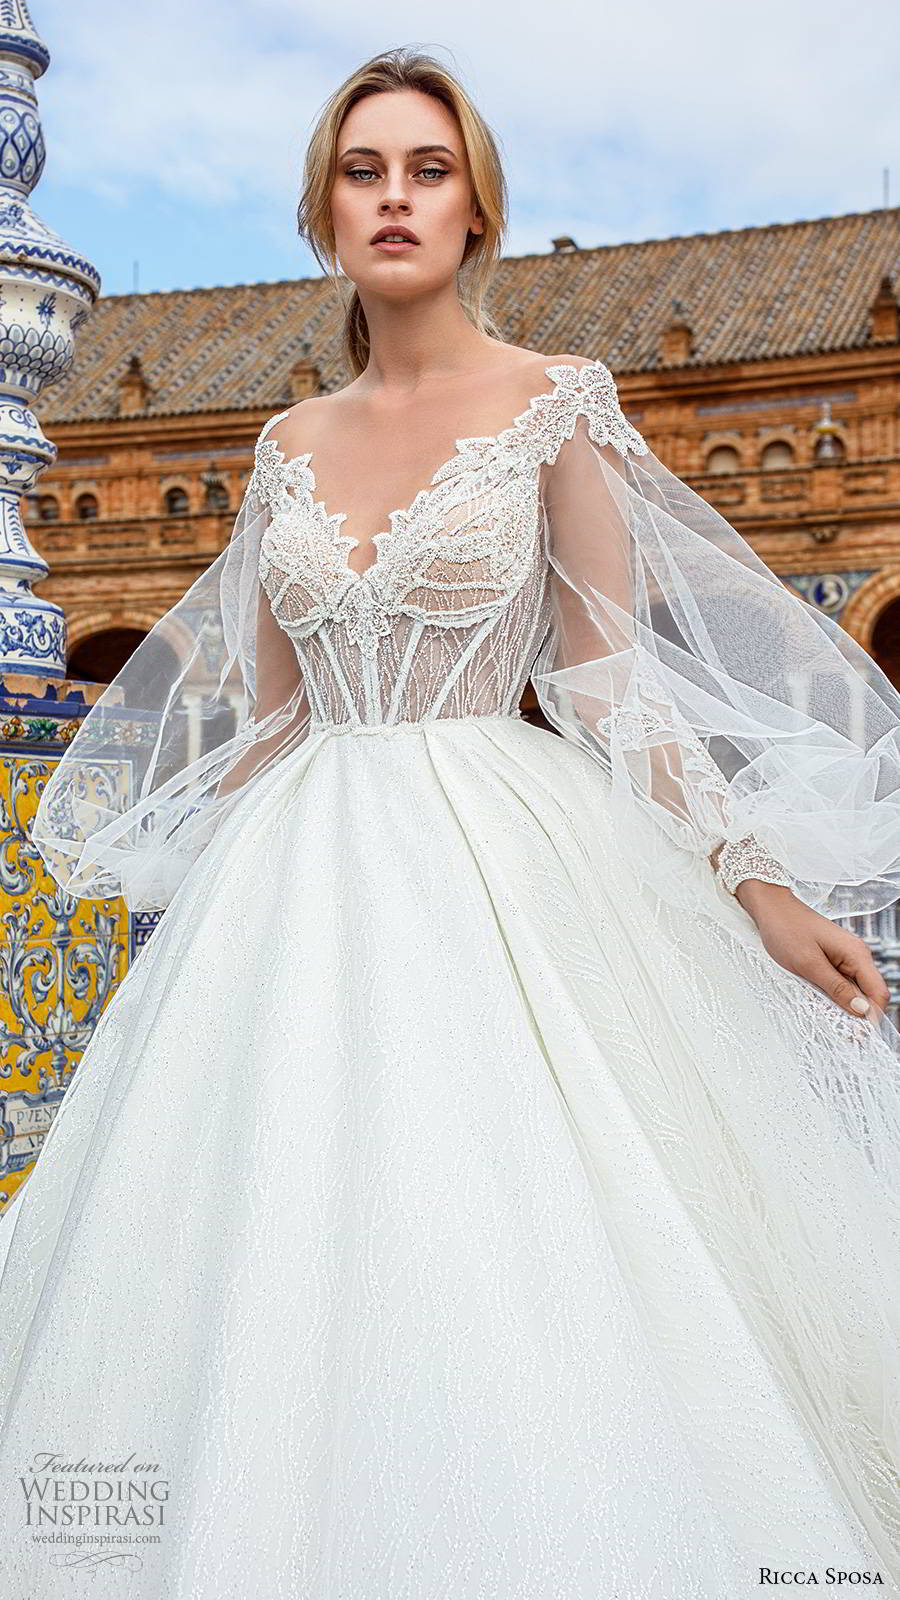 ricca sposa 2019 bridal sheer balloon bishop sleeves off shoulder v neckline embellished corset bodice romantic a line ball gown wedding dress sheer back cathedral train (9) zv